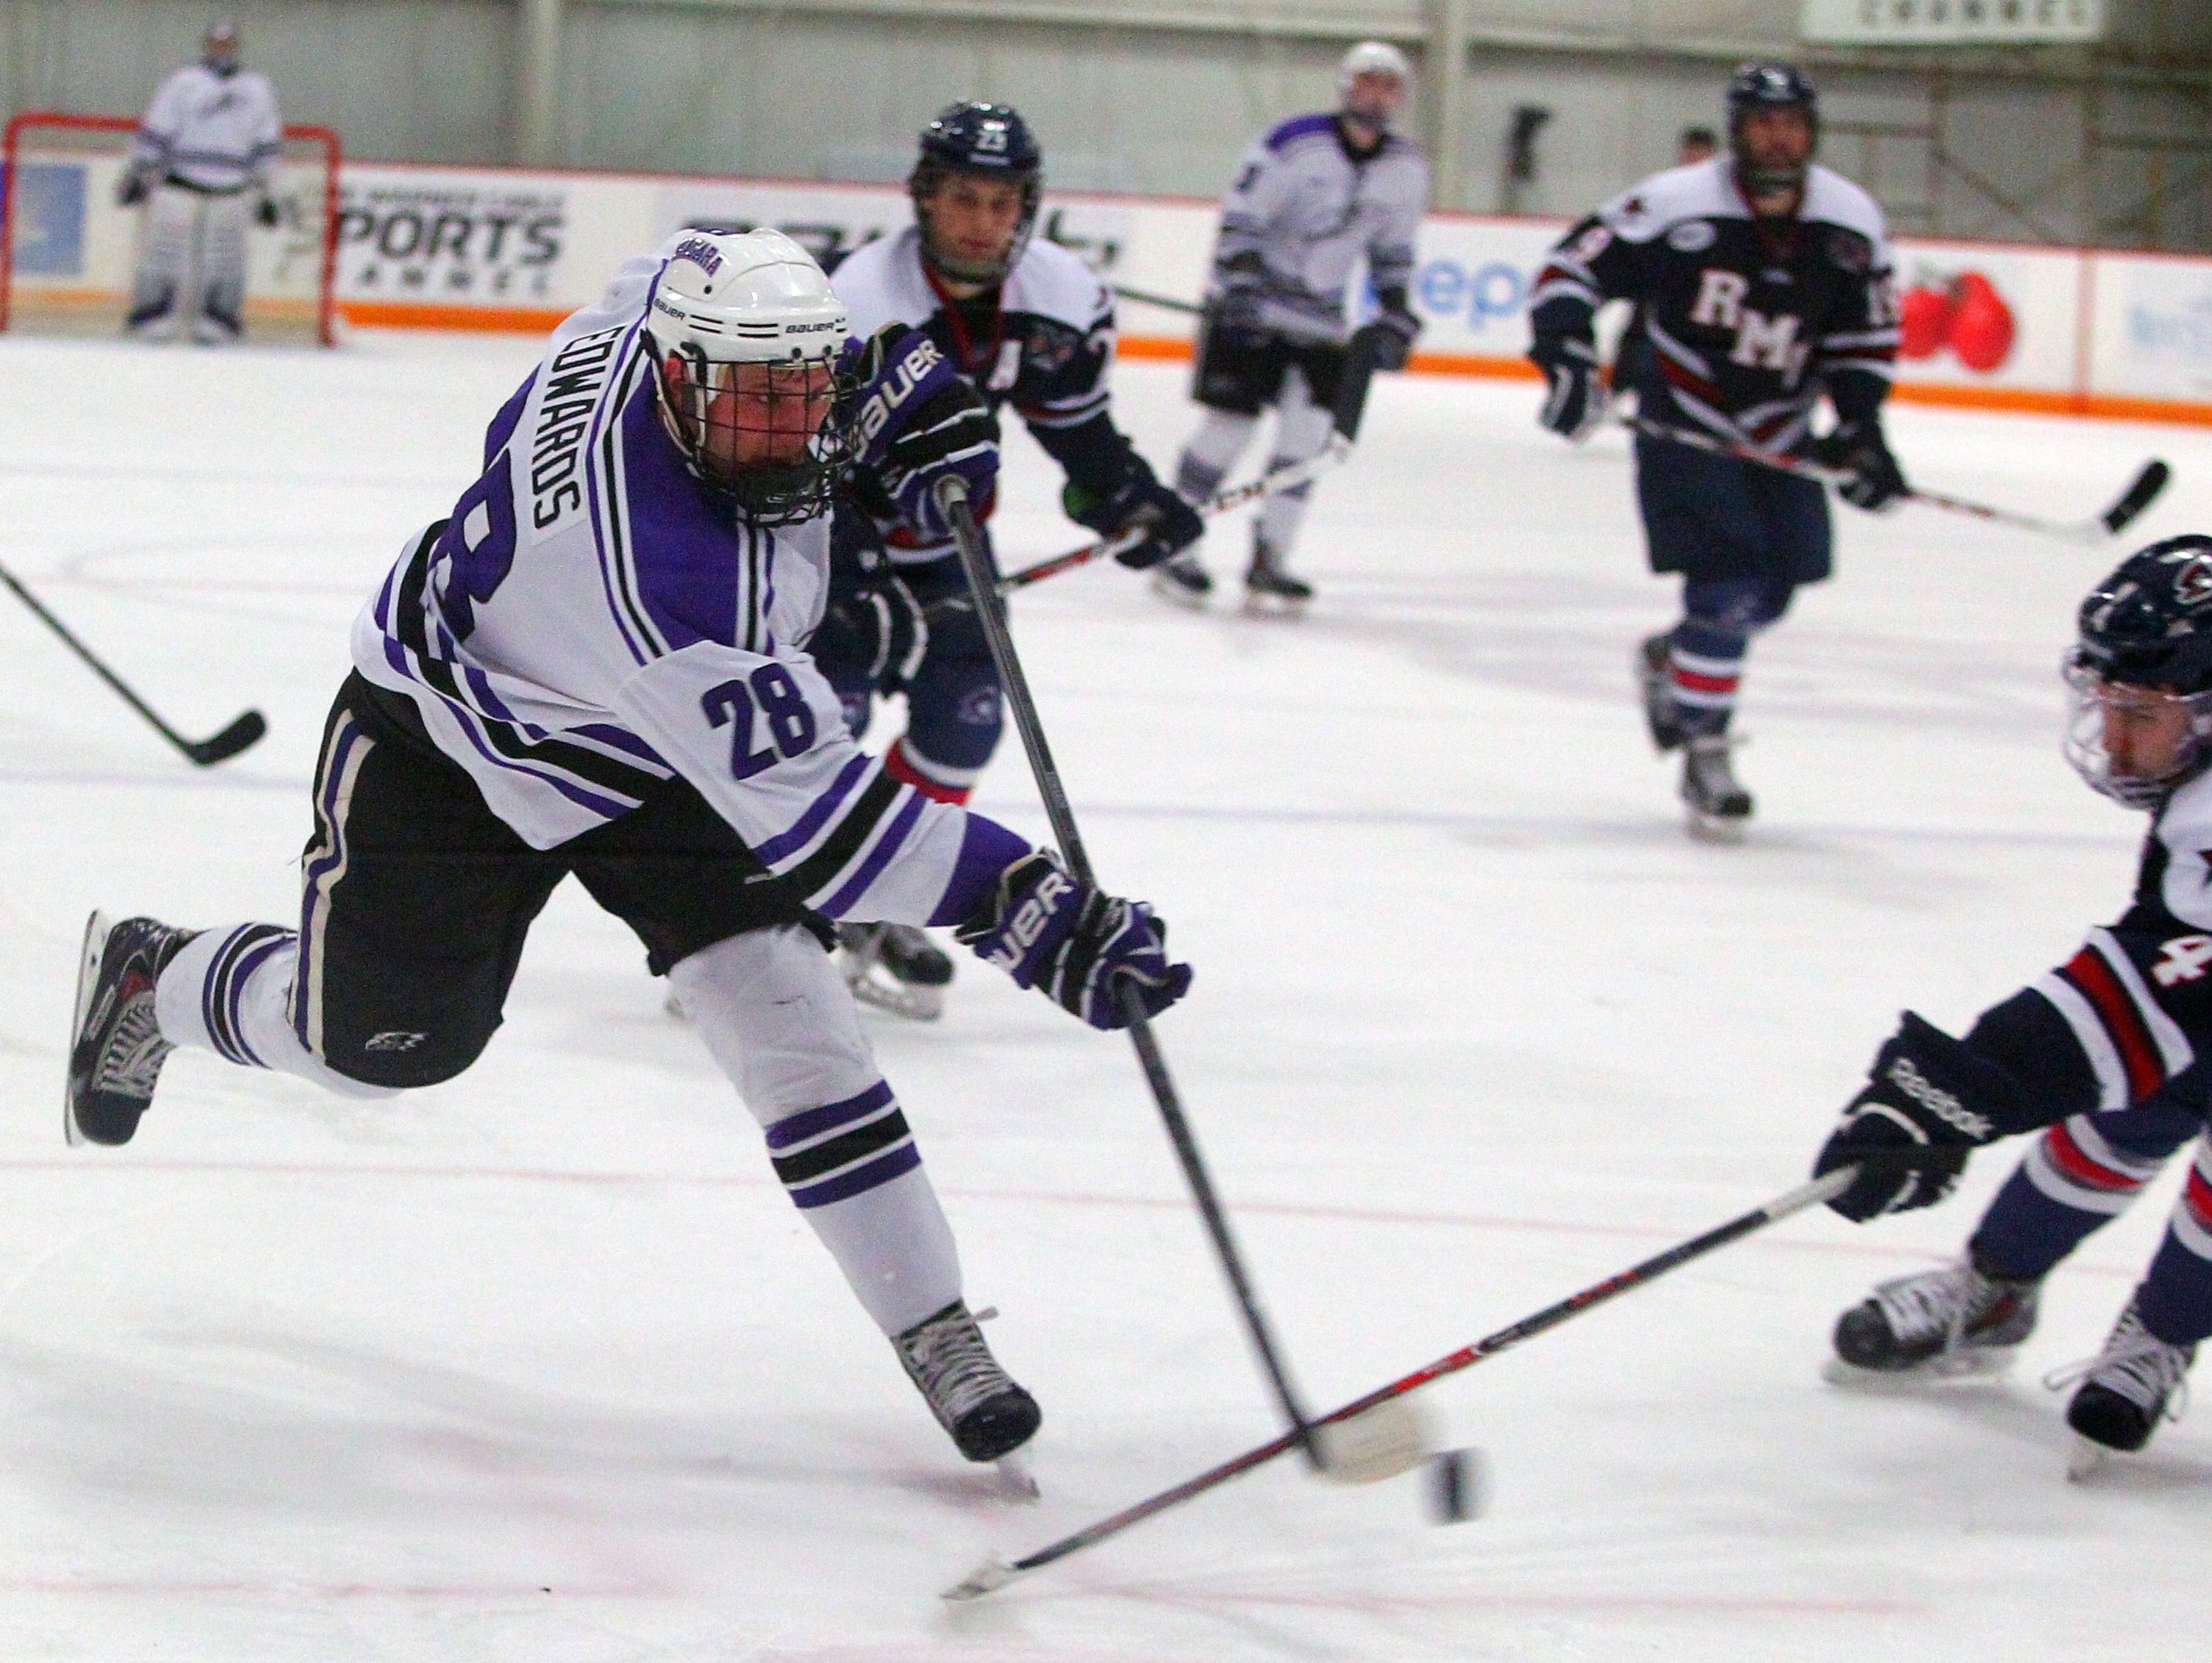 Niagara's Brock Edwards lets a shot go in the second period against Robert Morris during their game at Dwyer Arena.